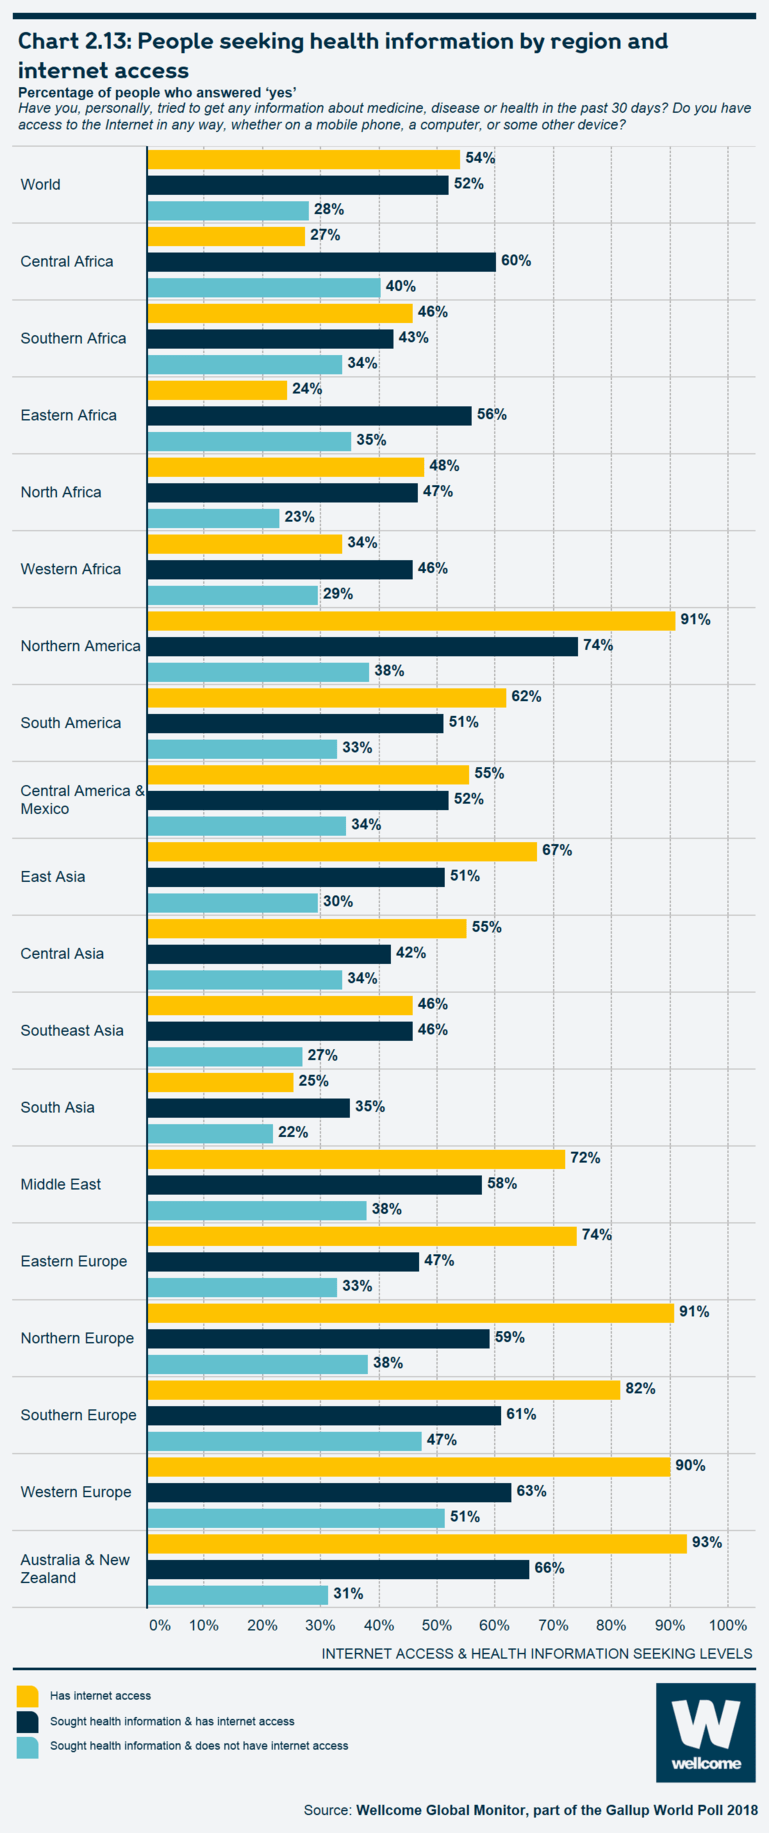 Chart 2.13: People seeking health information by region and internet access